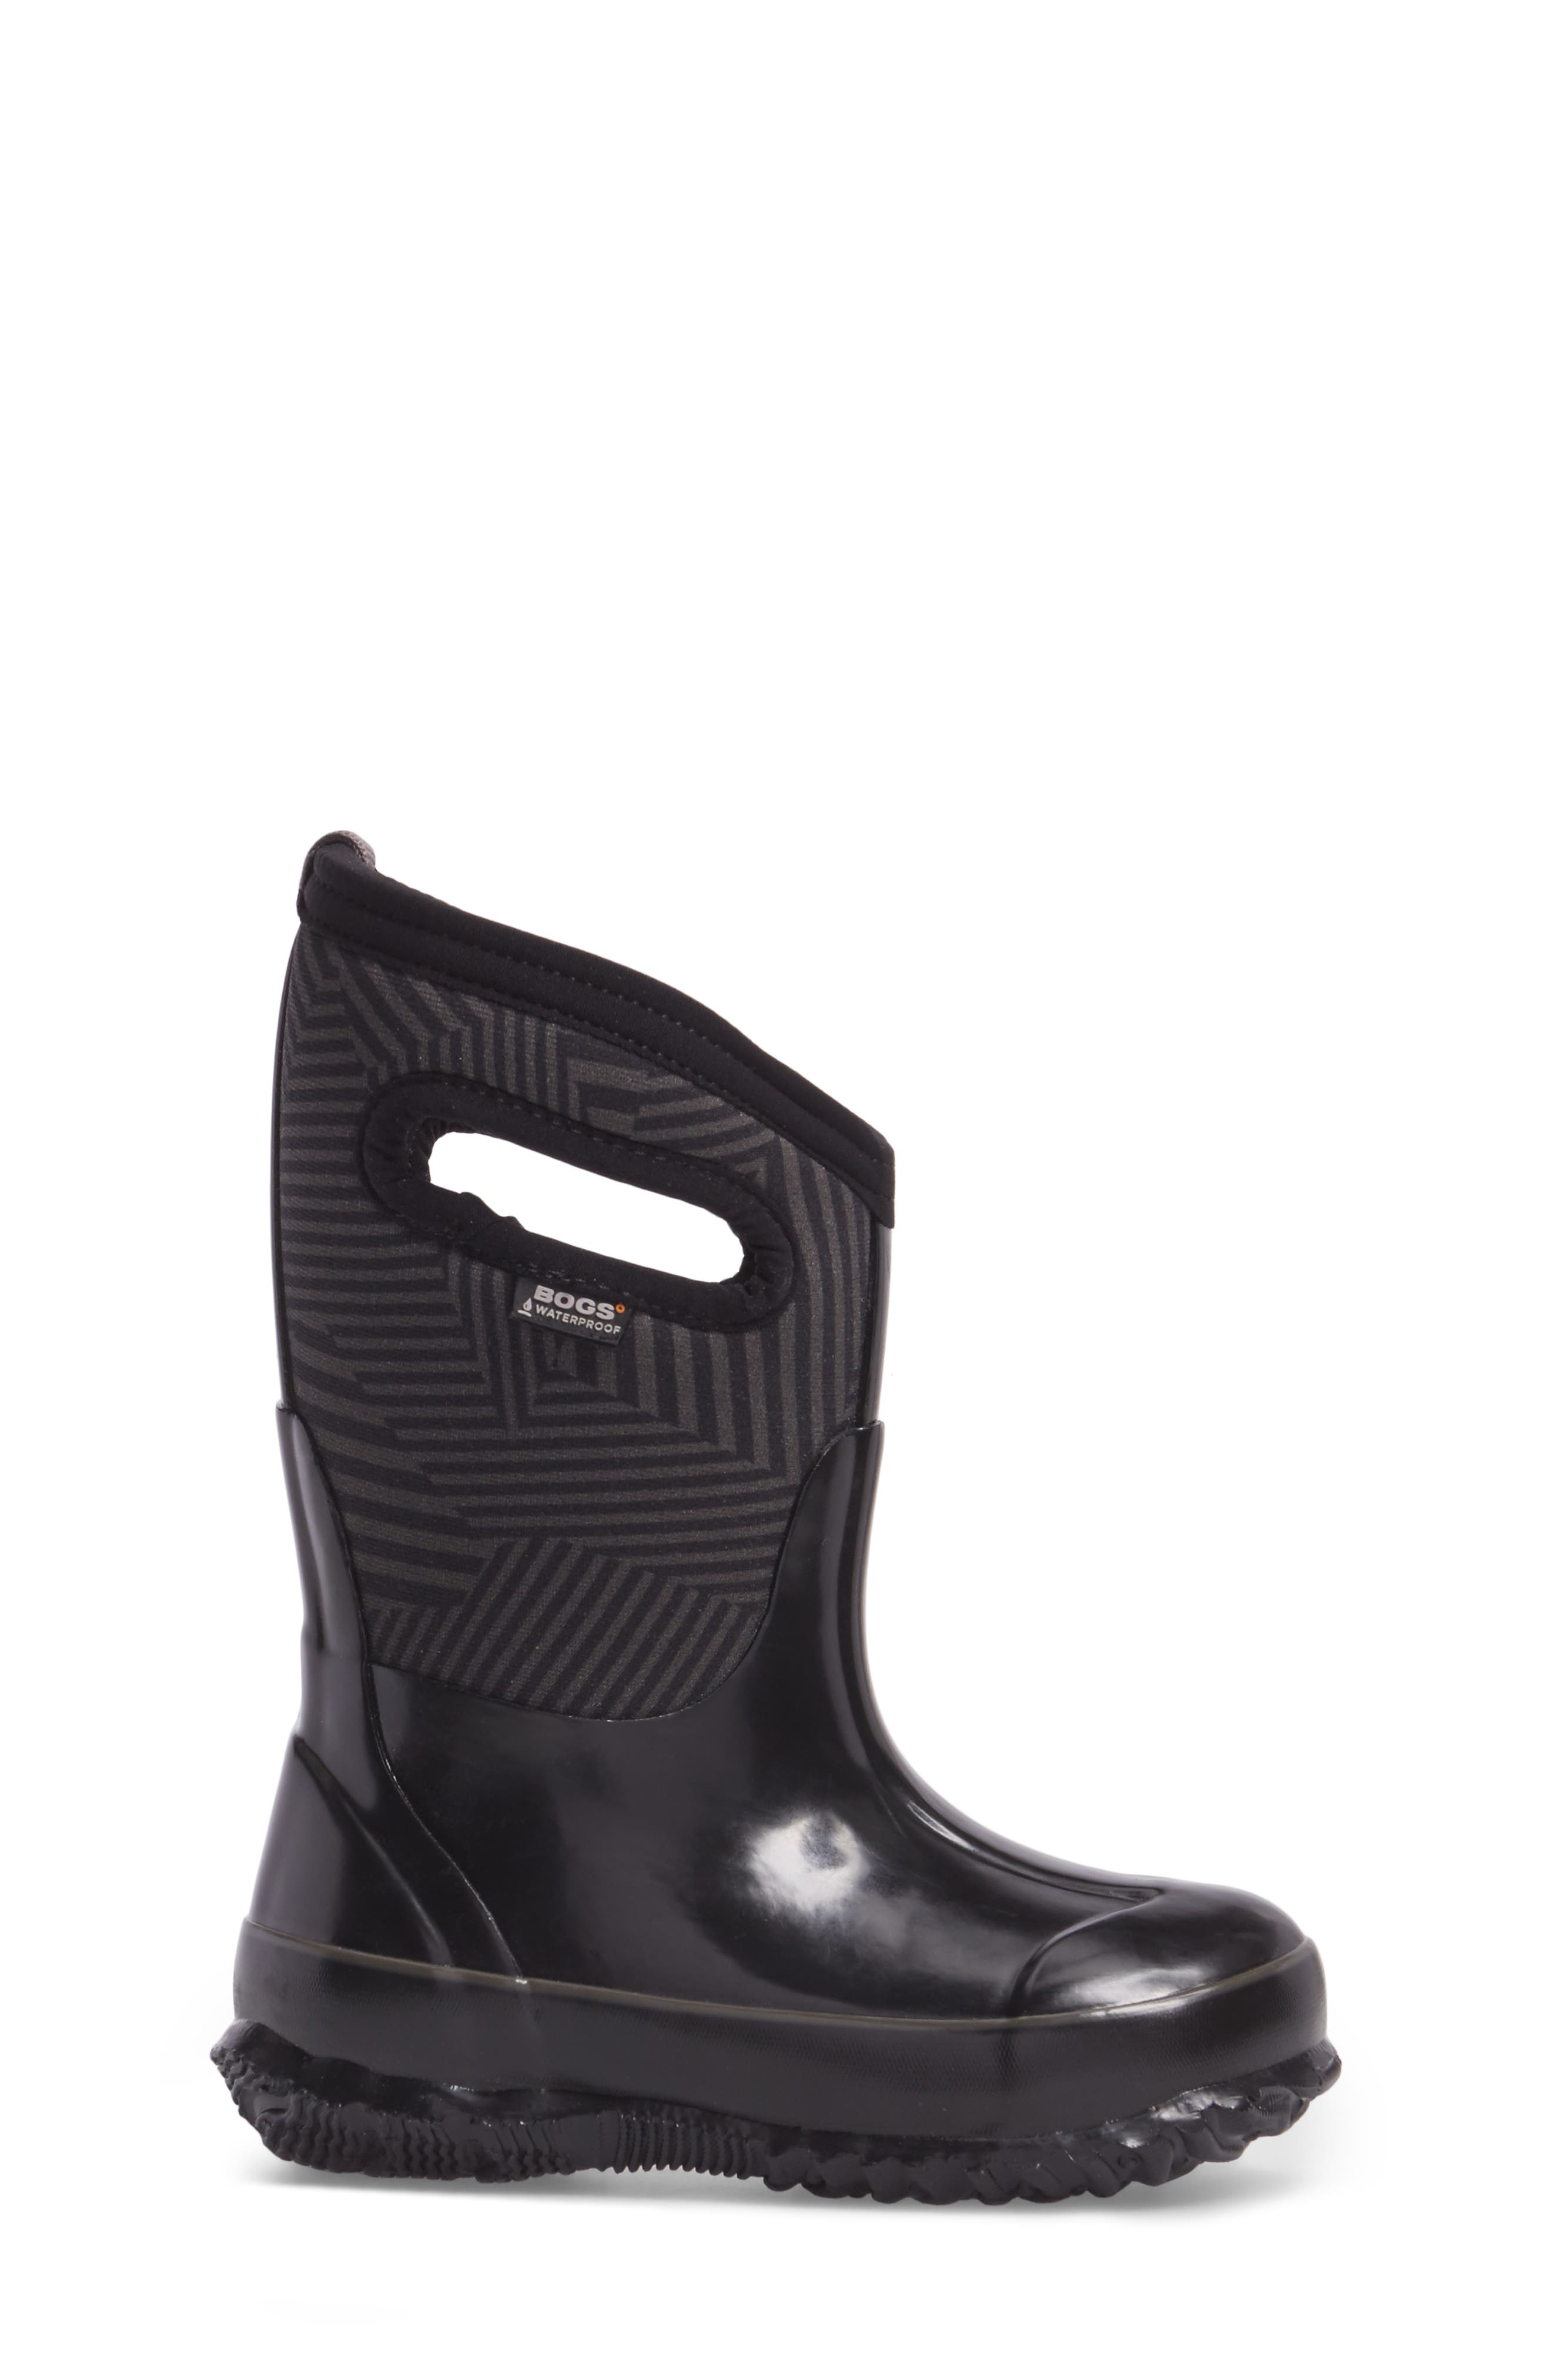 Alternate Image 3  - Bogs Classic Phaser Insulated Waterproof Boot (Toddler, Little Kid & Big Kid)